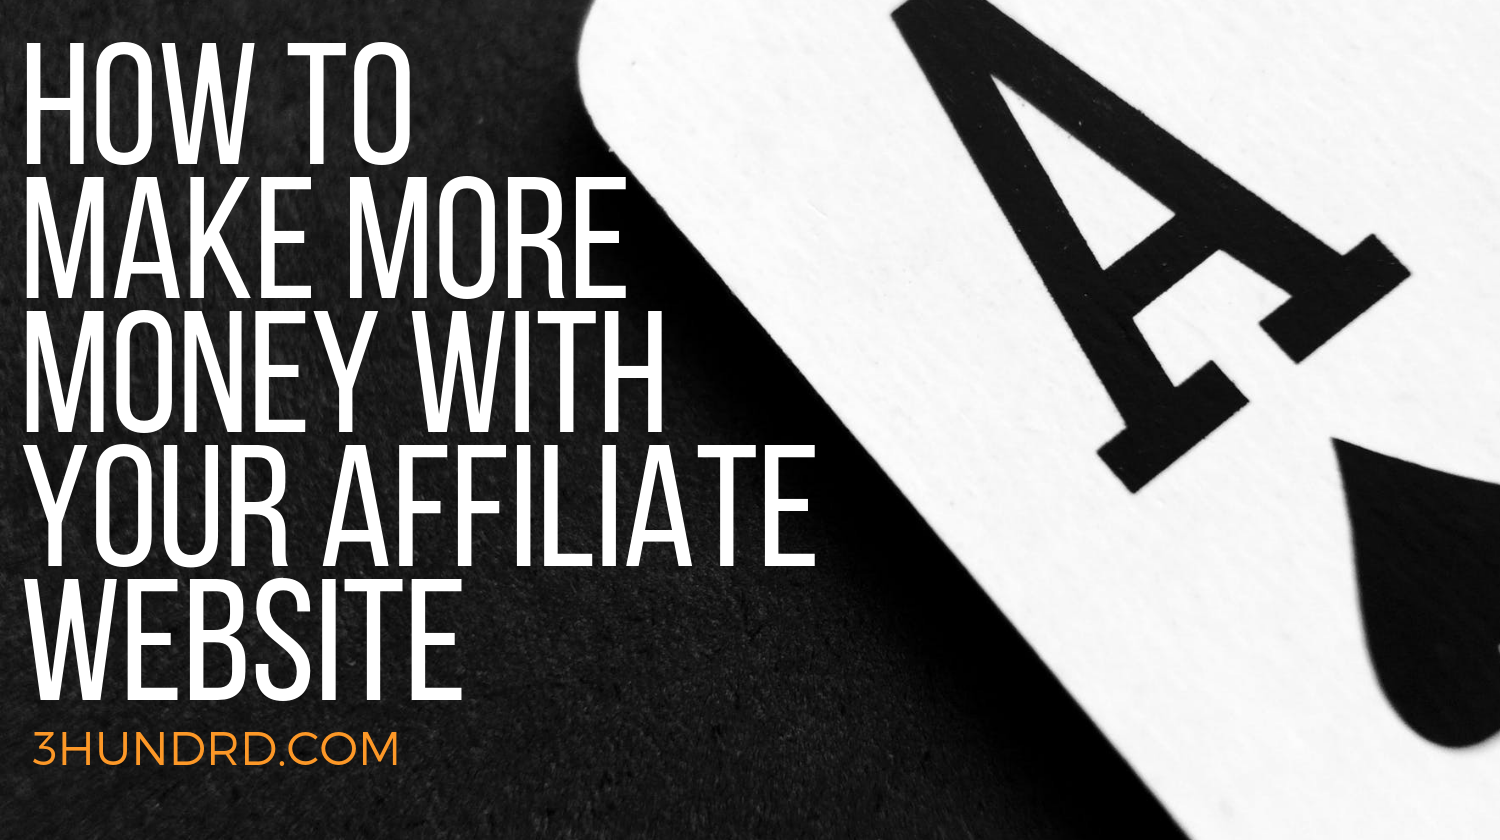 how to make more money as an affiliate marketer